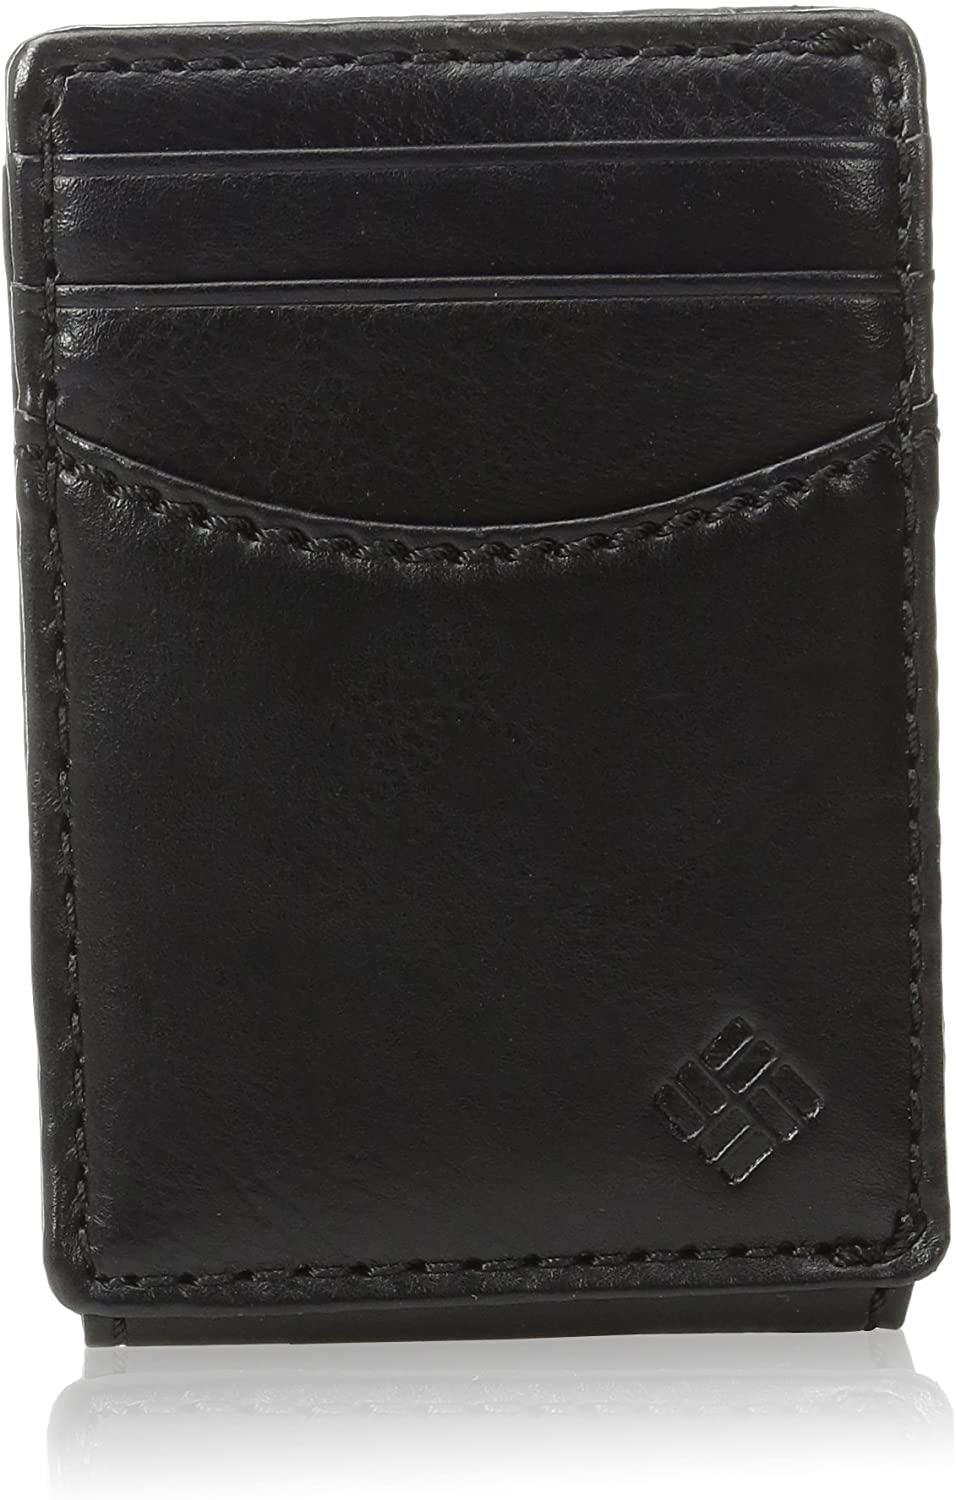 Columbia Men's RFID Blocking Leather Front Pocket Wallet Card Holder (Granby Black) $11.90 + Free Shipping w/ Amazon Prime or Orders $25+